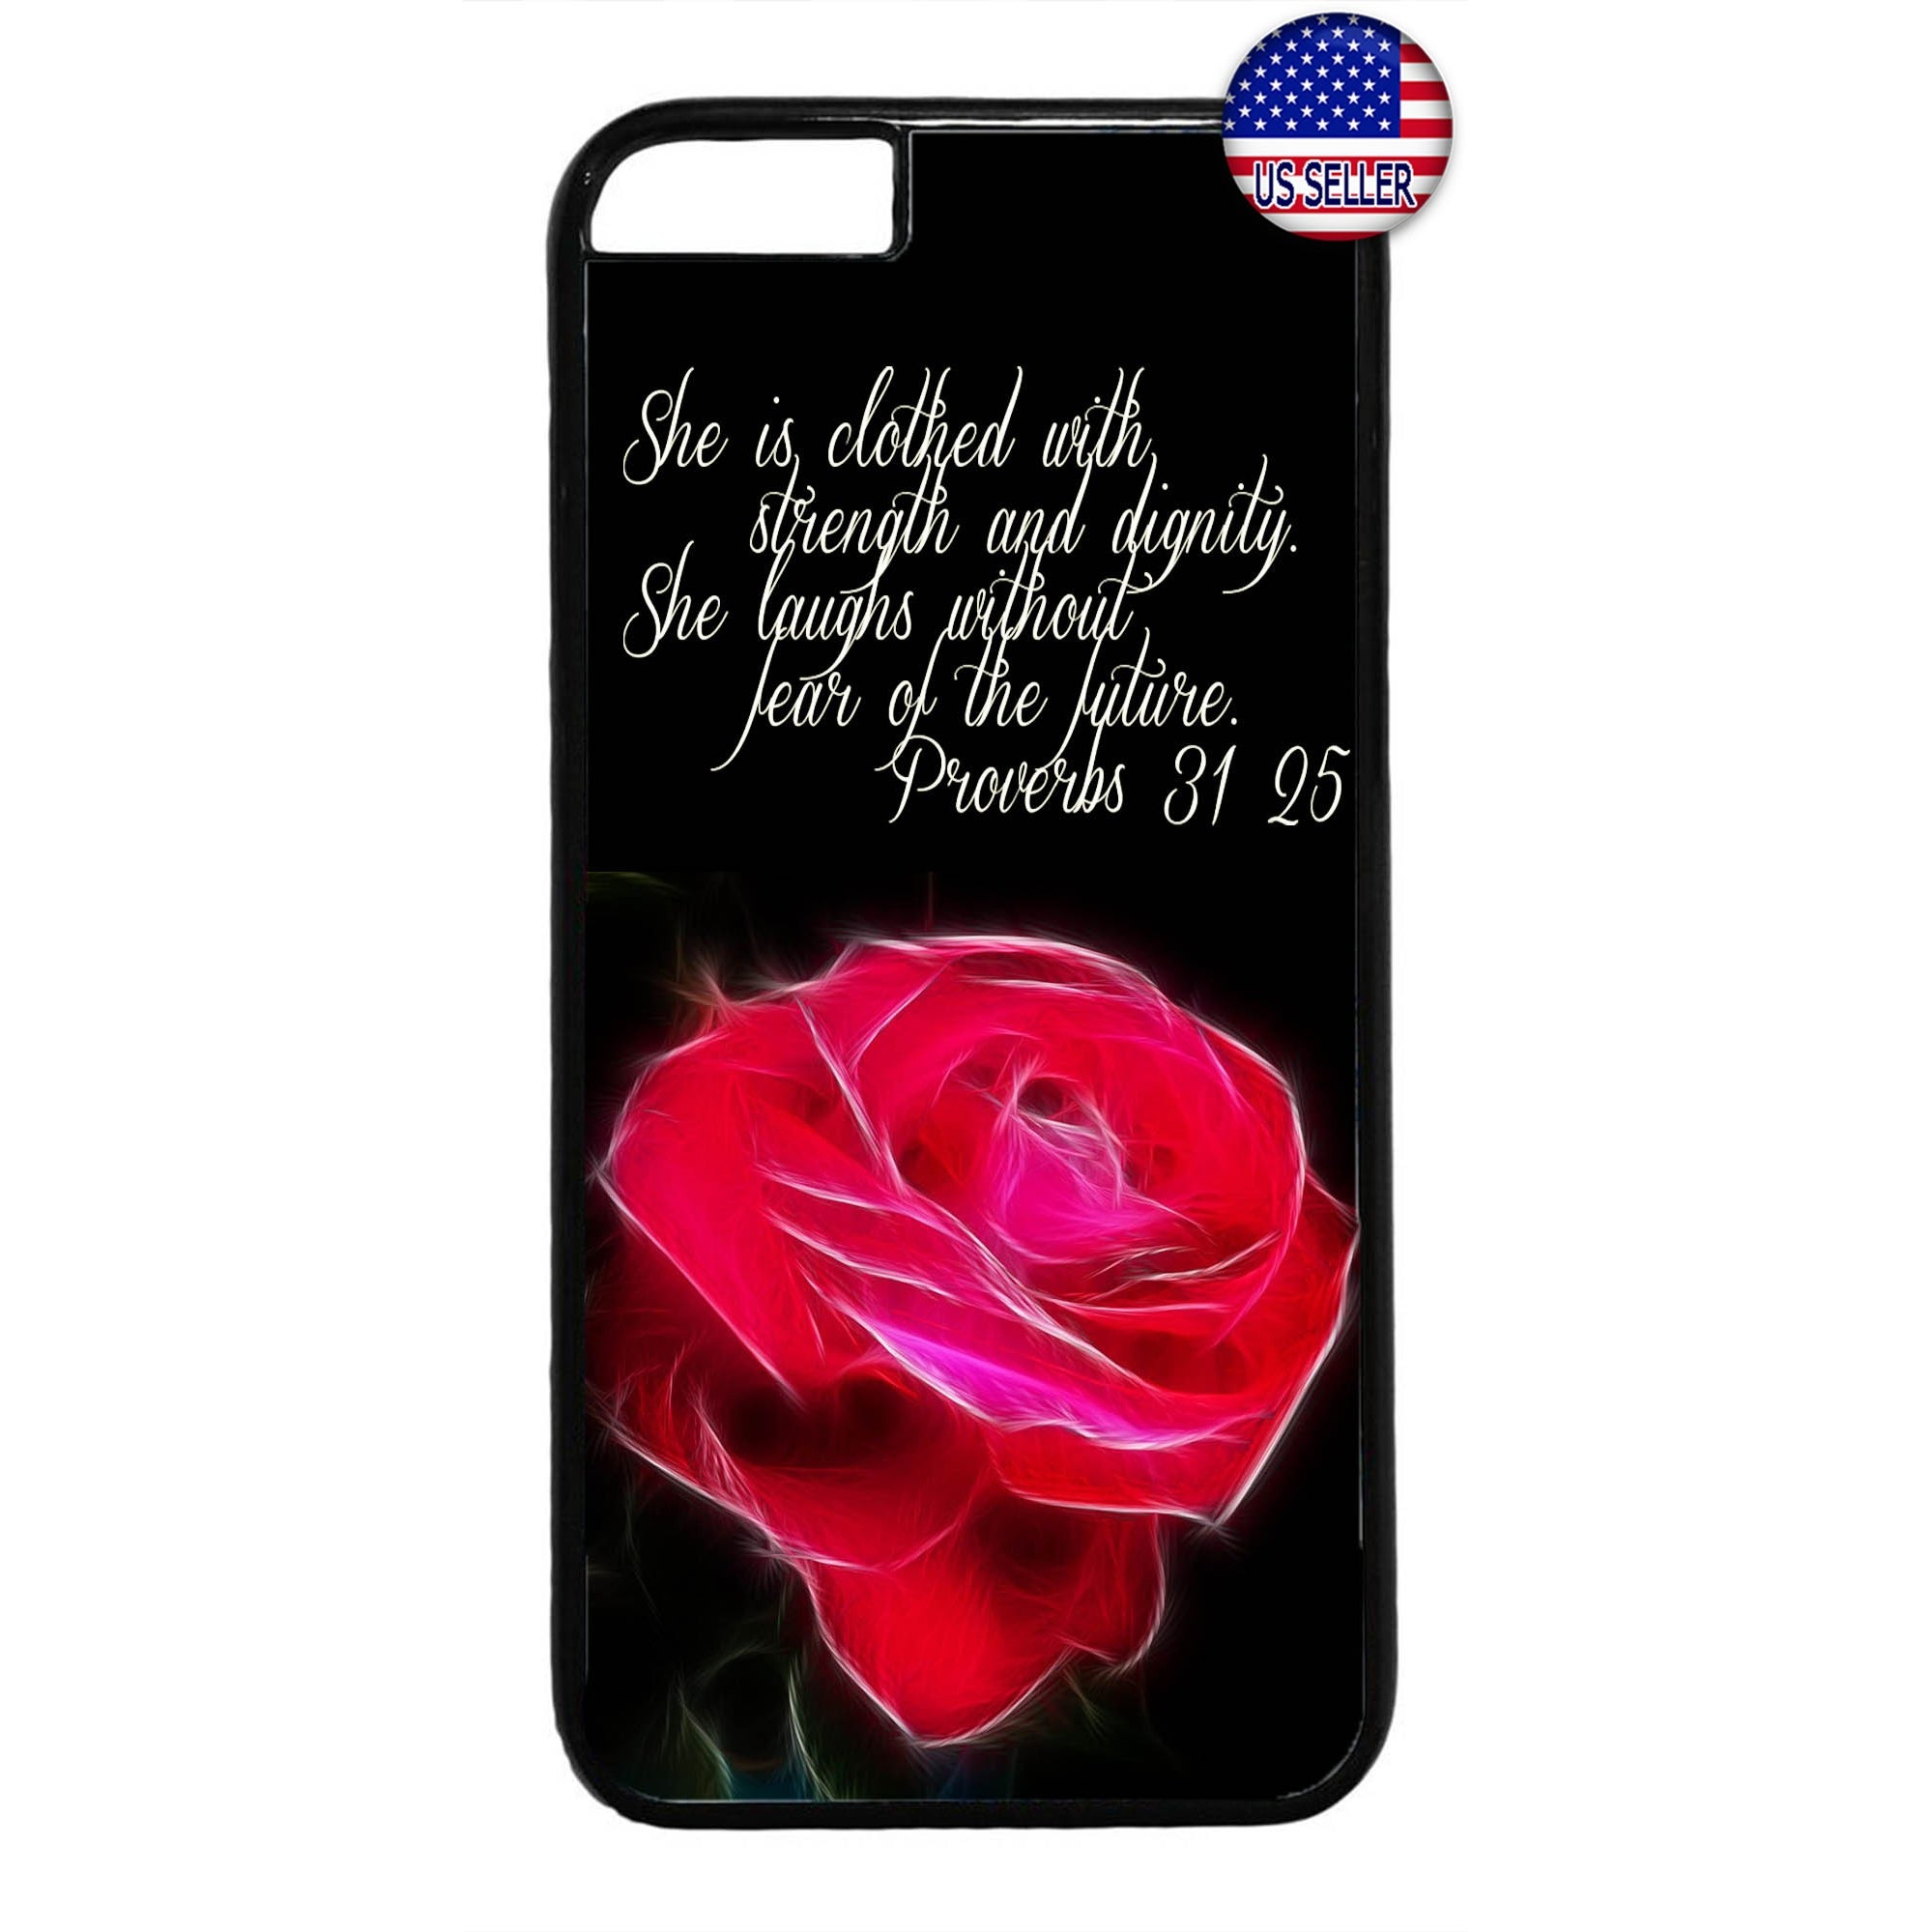 Jesus Christ Rose Bible Verse Christian Rubber Case Cover For Iphone